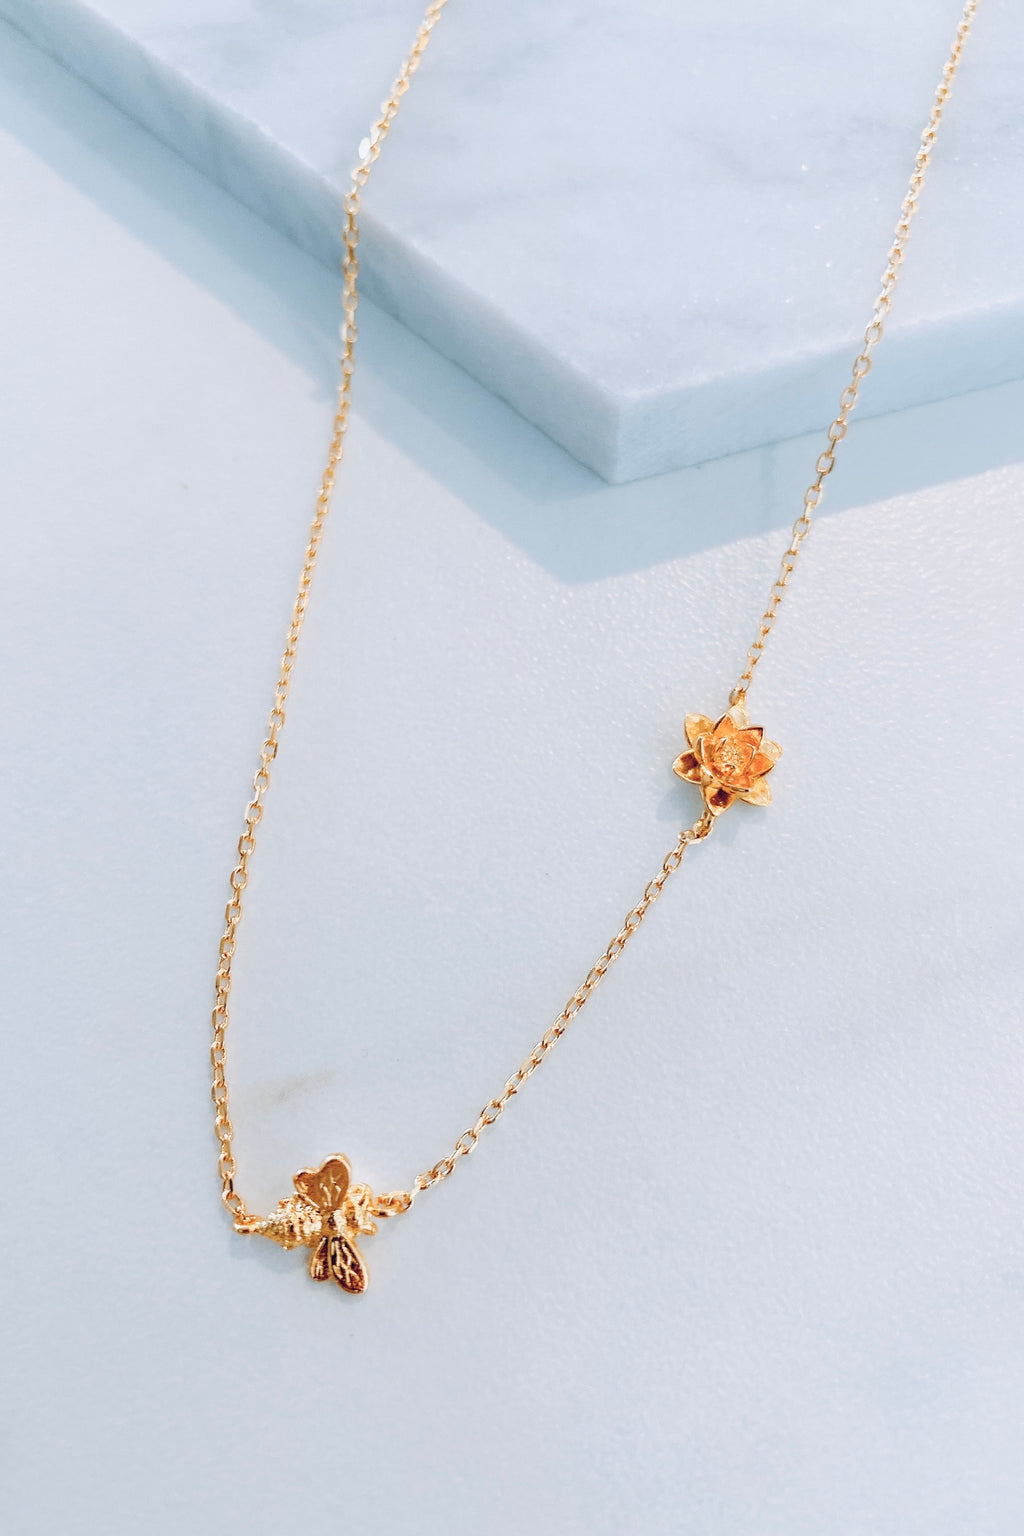 The Bee's Knees Necklace